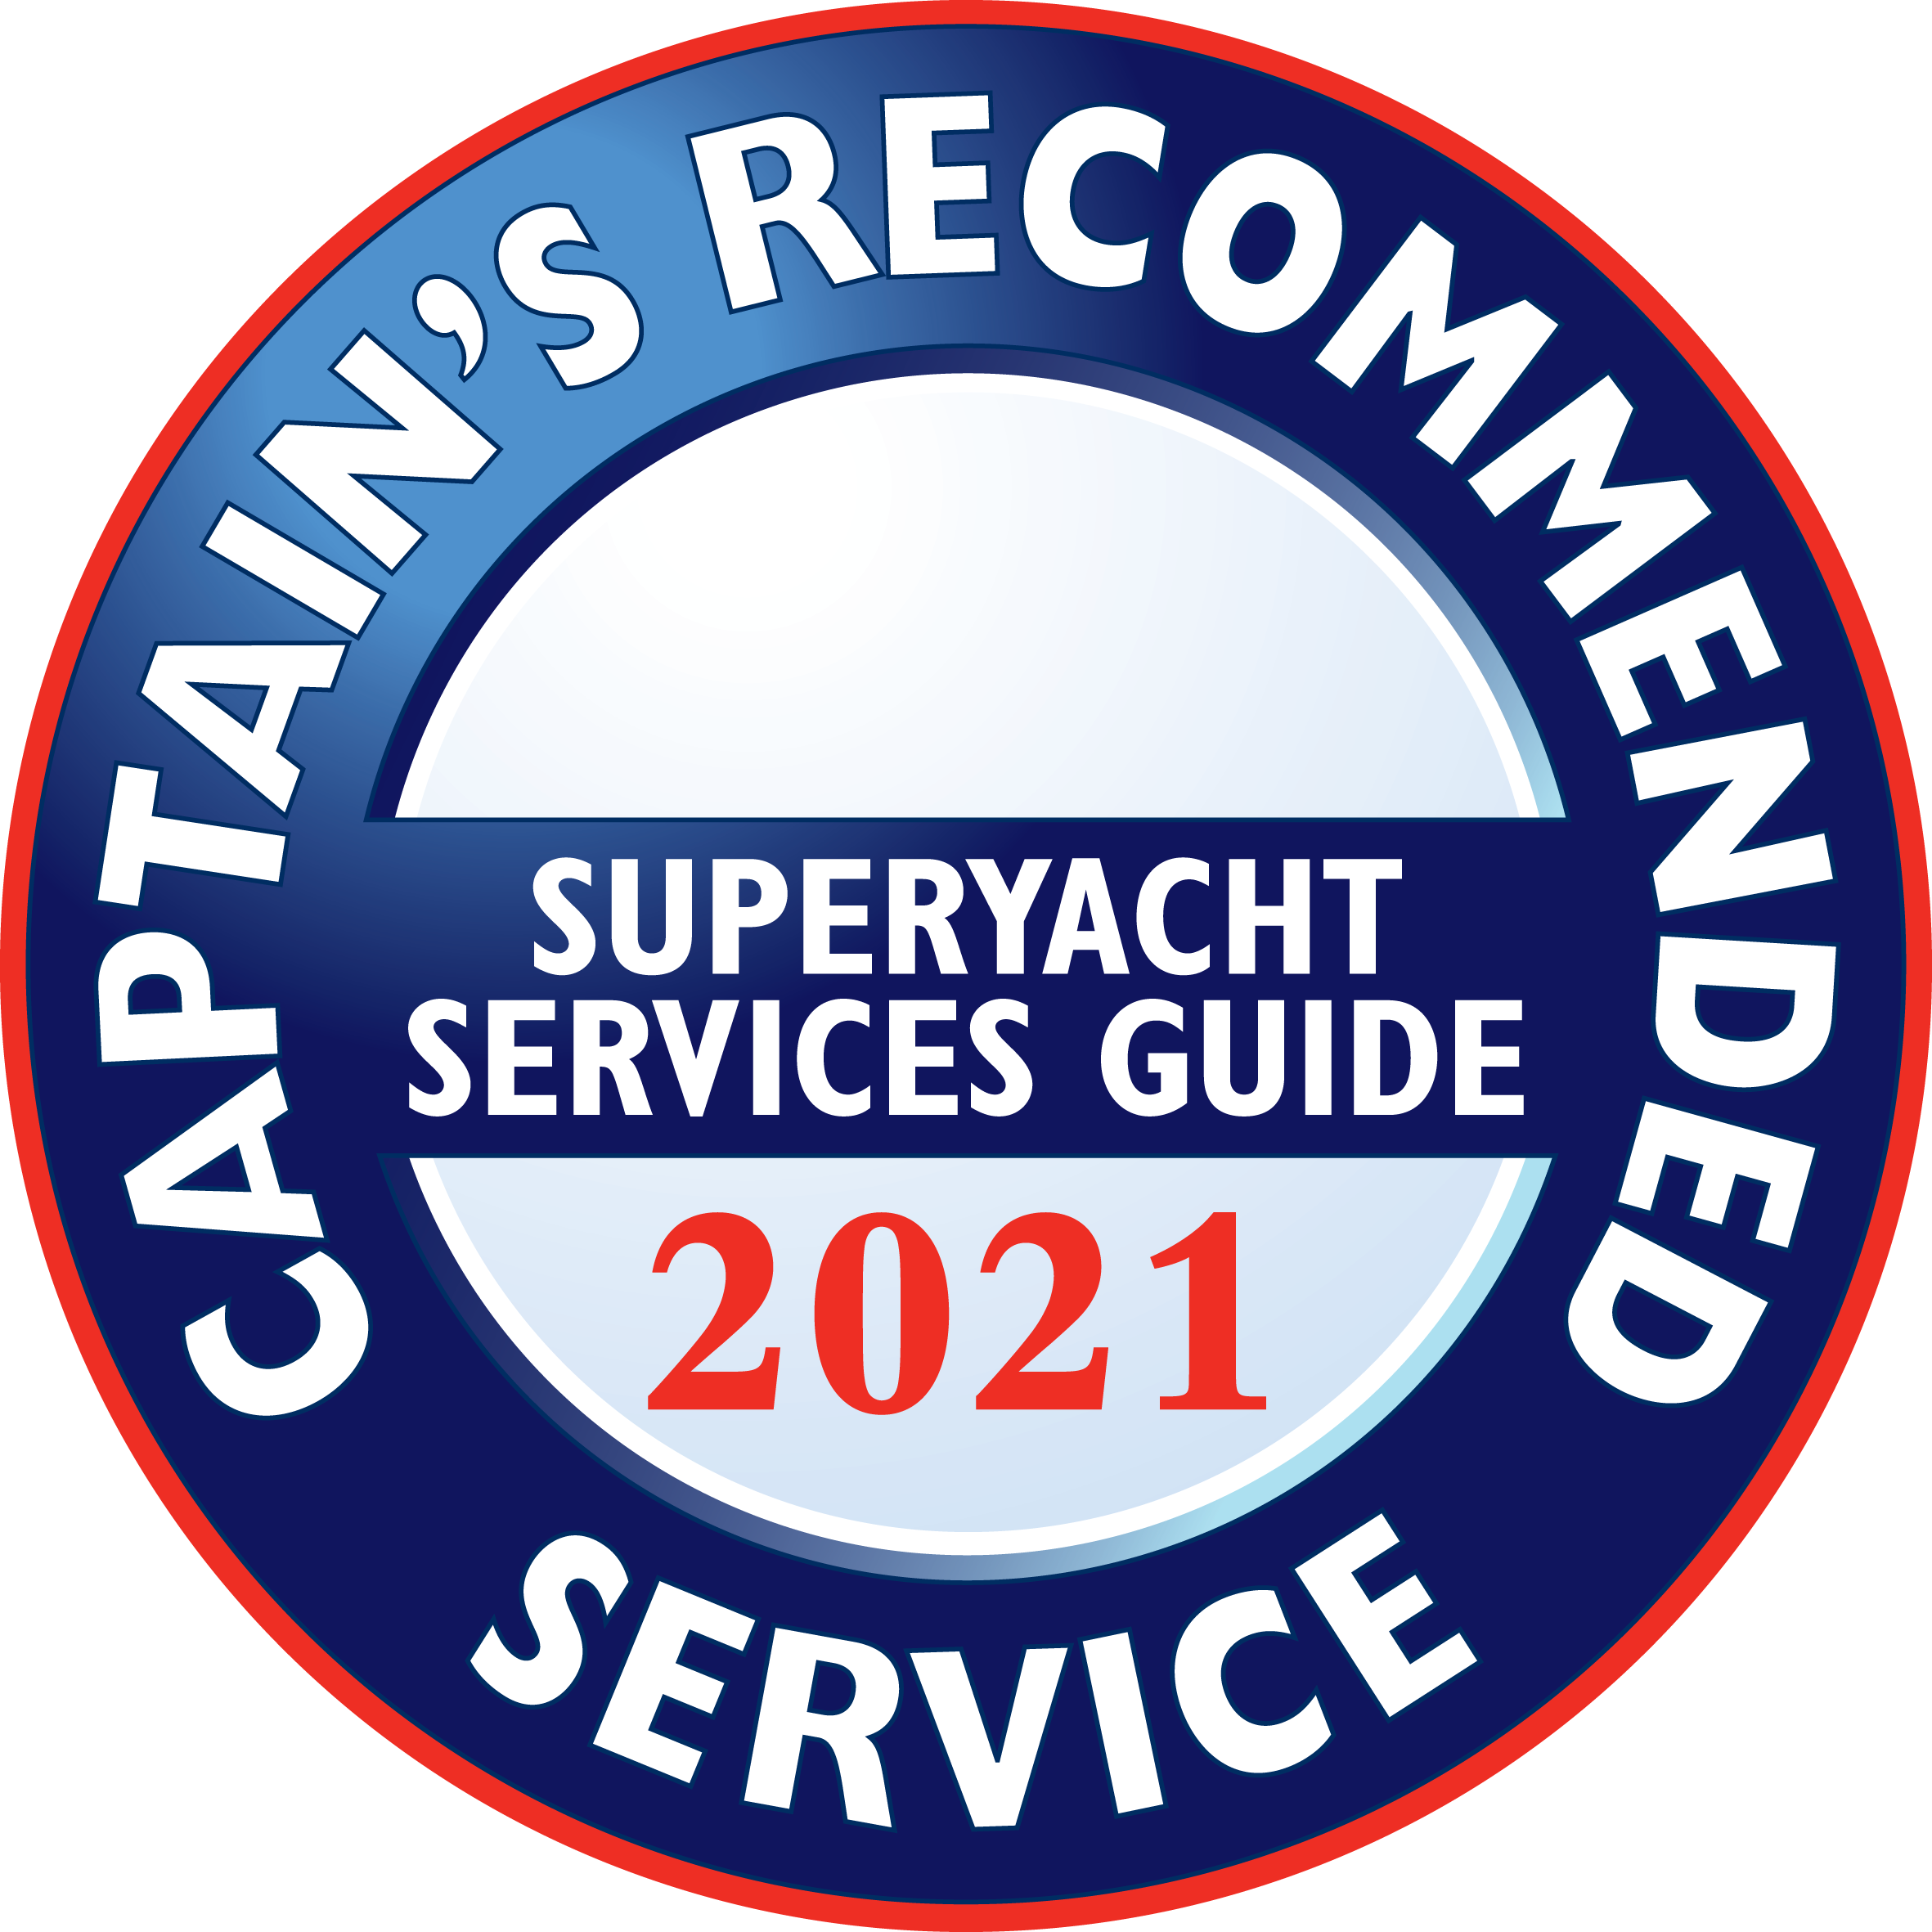 Captain's recommended services